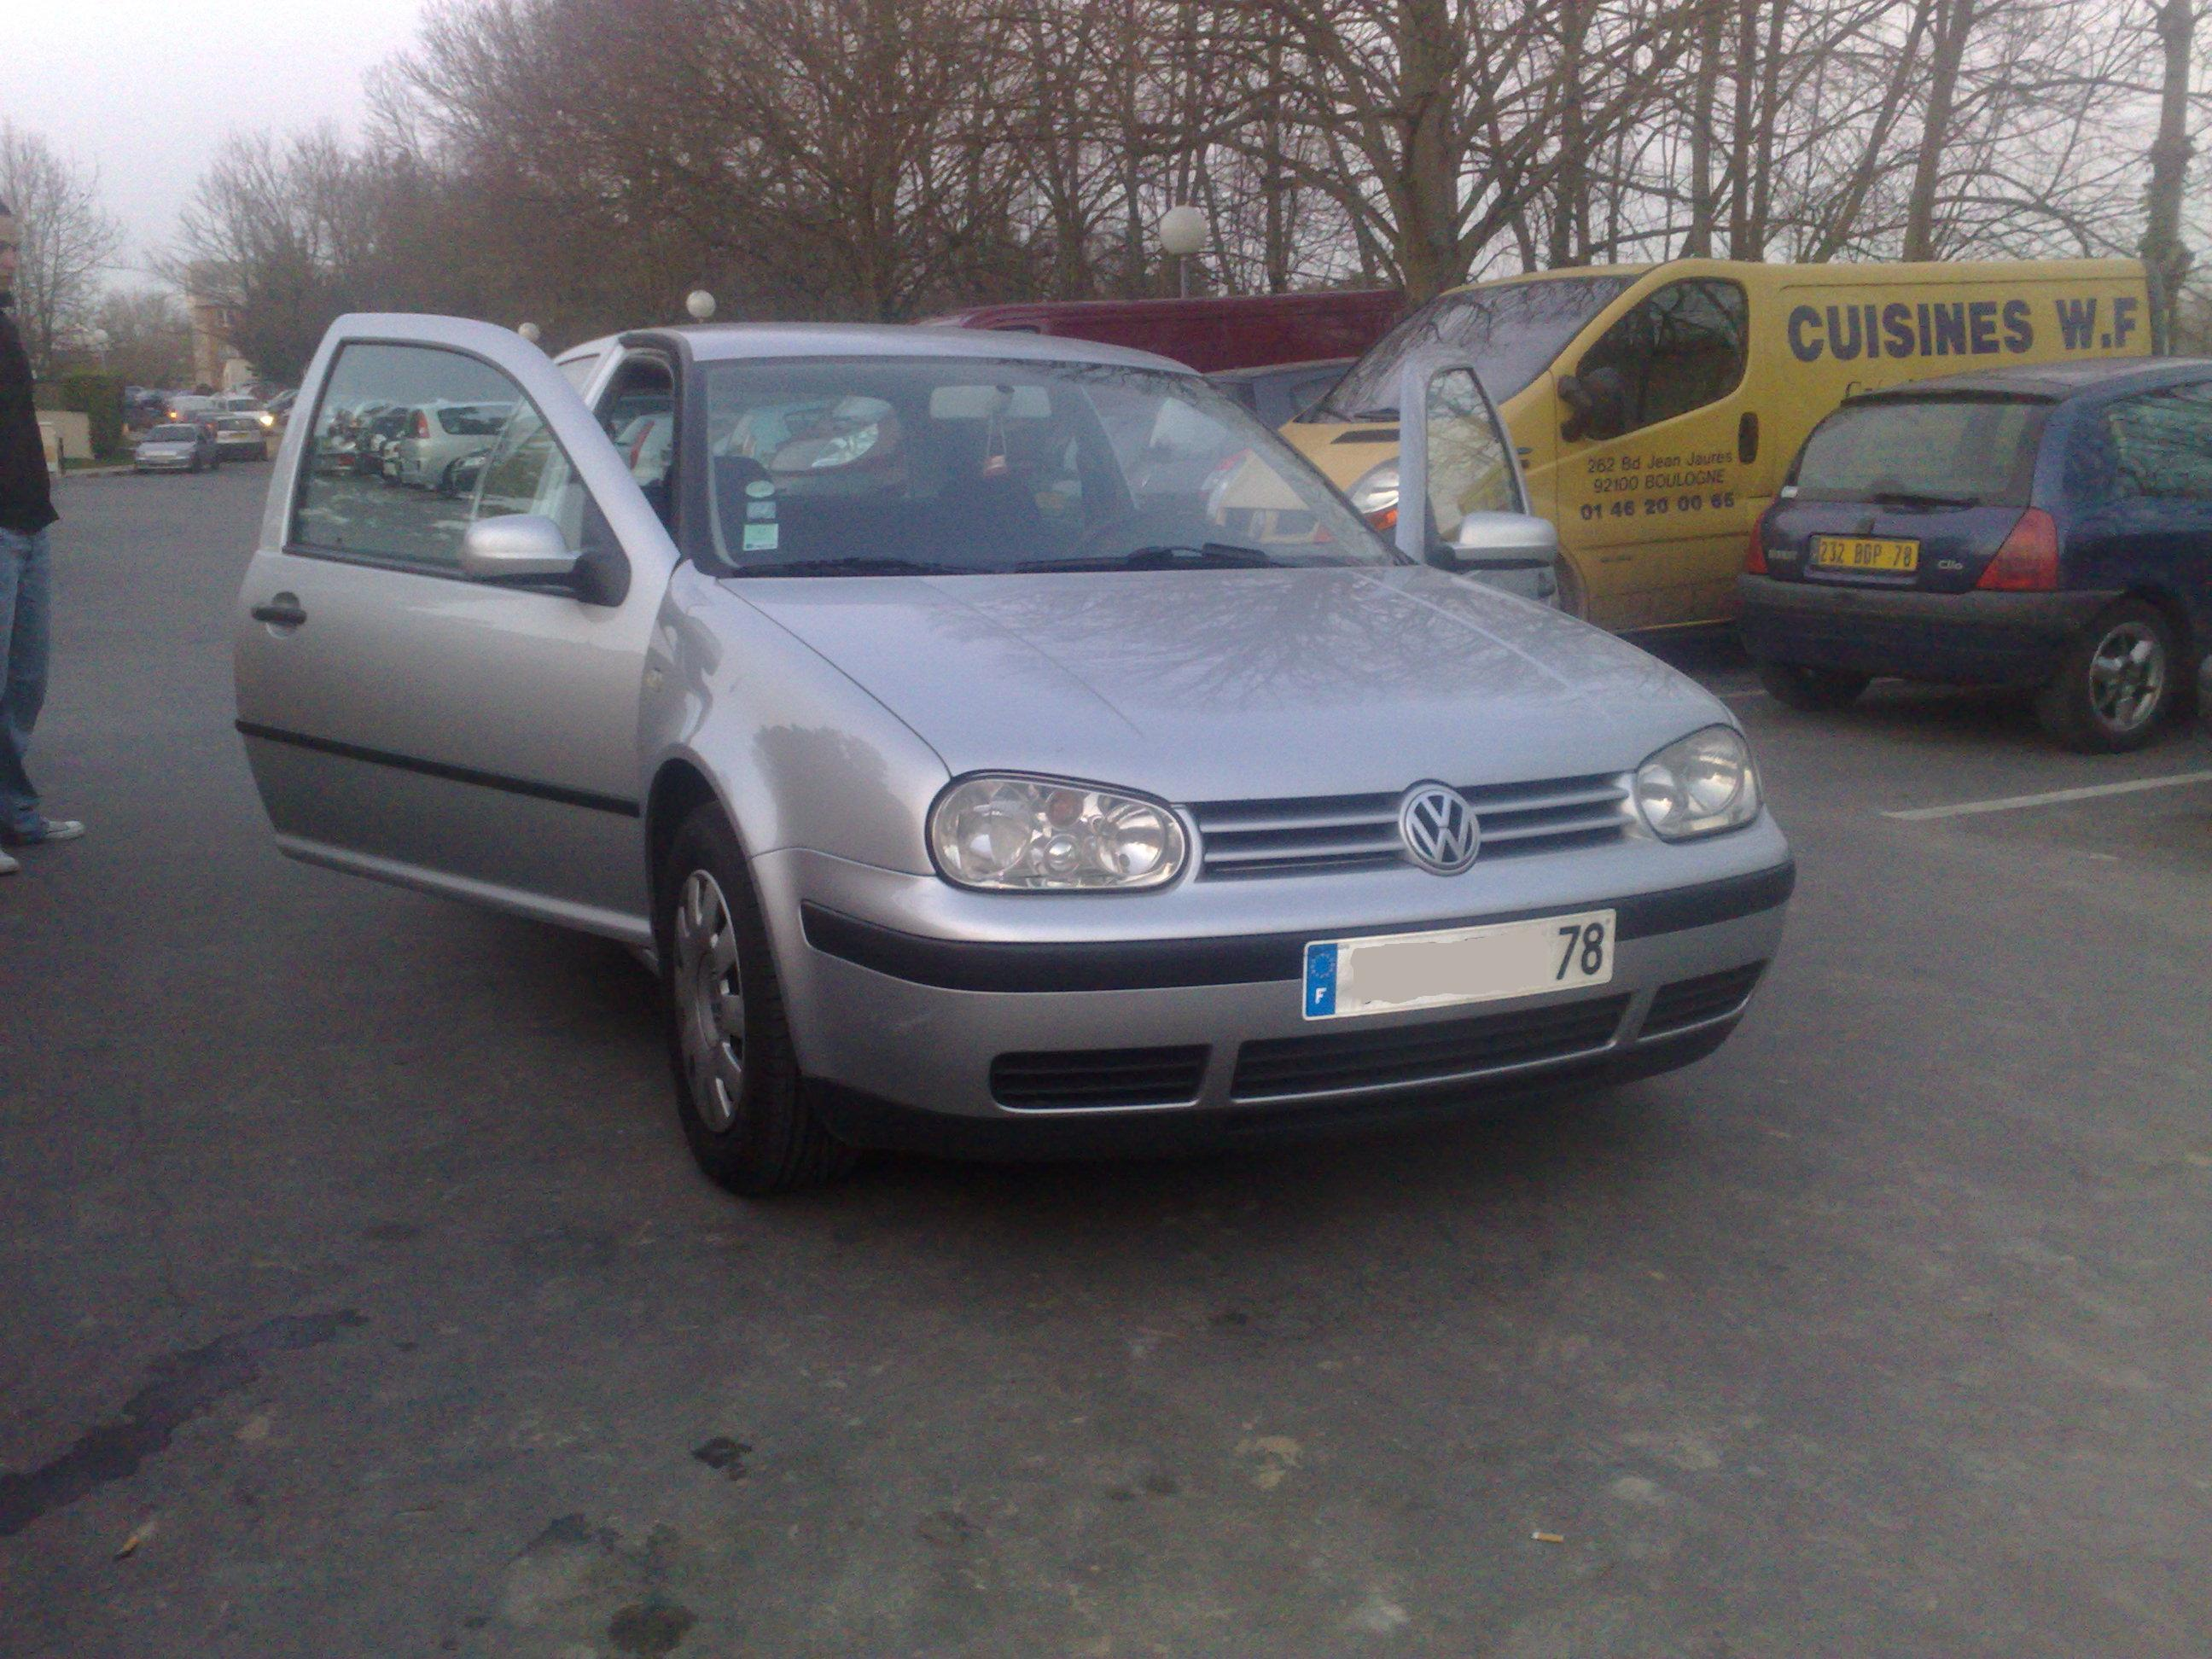 Golf iv tdi 110 de m d m x7827 garage des golf iv tdi for Garage volkswagen herault